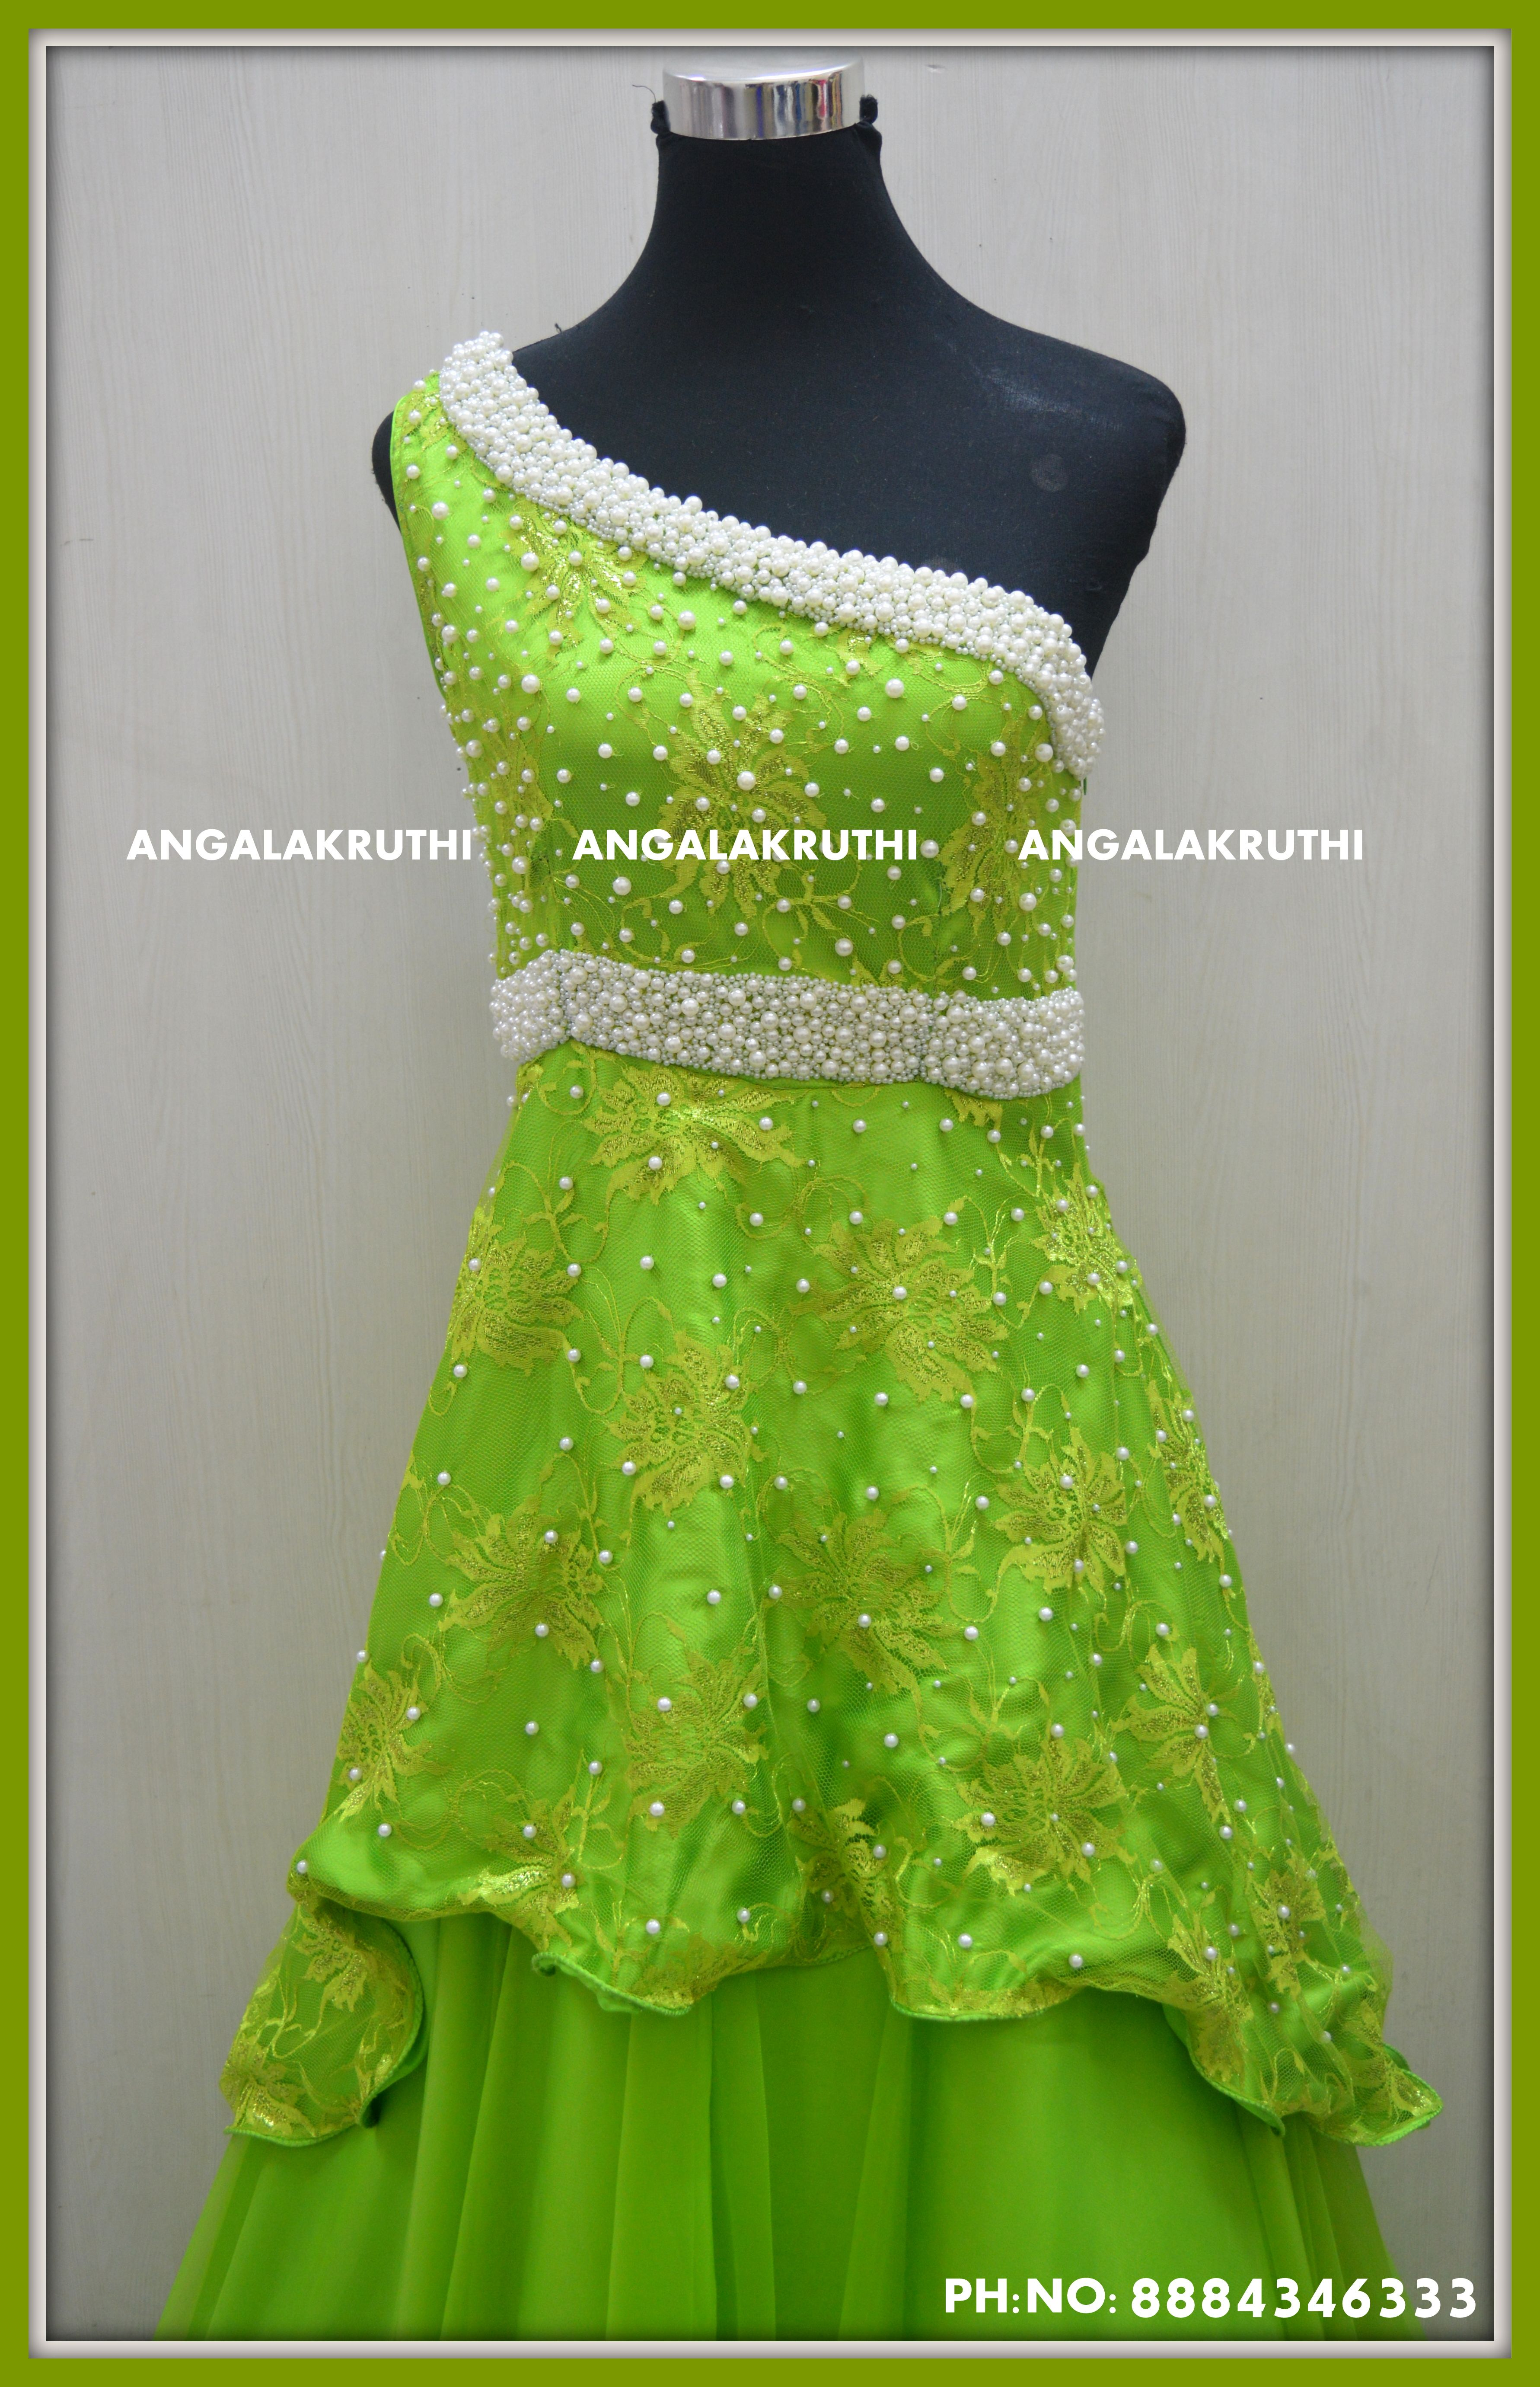 Long Gown With Rich Pearl Embroidery By Angalakruthi Boutique Bangalore Ladies And Kids Designer Boutique In Bangalore Clothes For Women Fashion Dresses